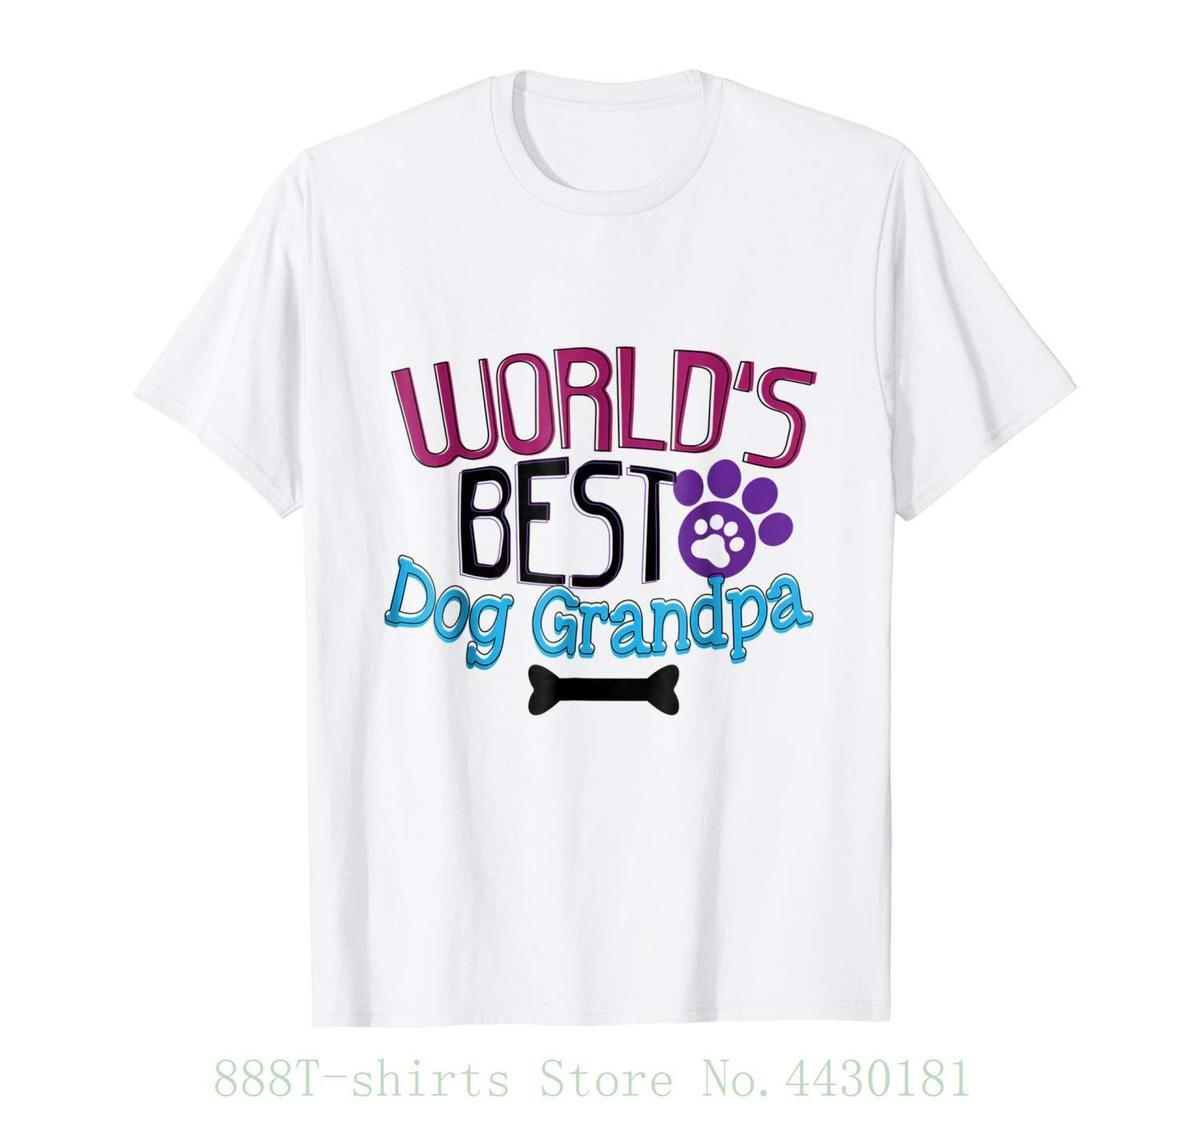 a8b907958 Women'S Tee Grandpa Dog Lover Grandparents Gifts T Shirt Animal Rescue 100%  Cotton High Quality Woman Crazy T Shirt Design Comedy T Shirt From Jie54,  ...